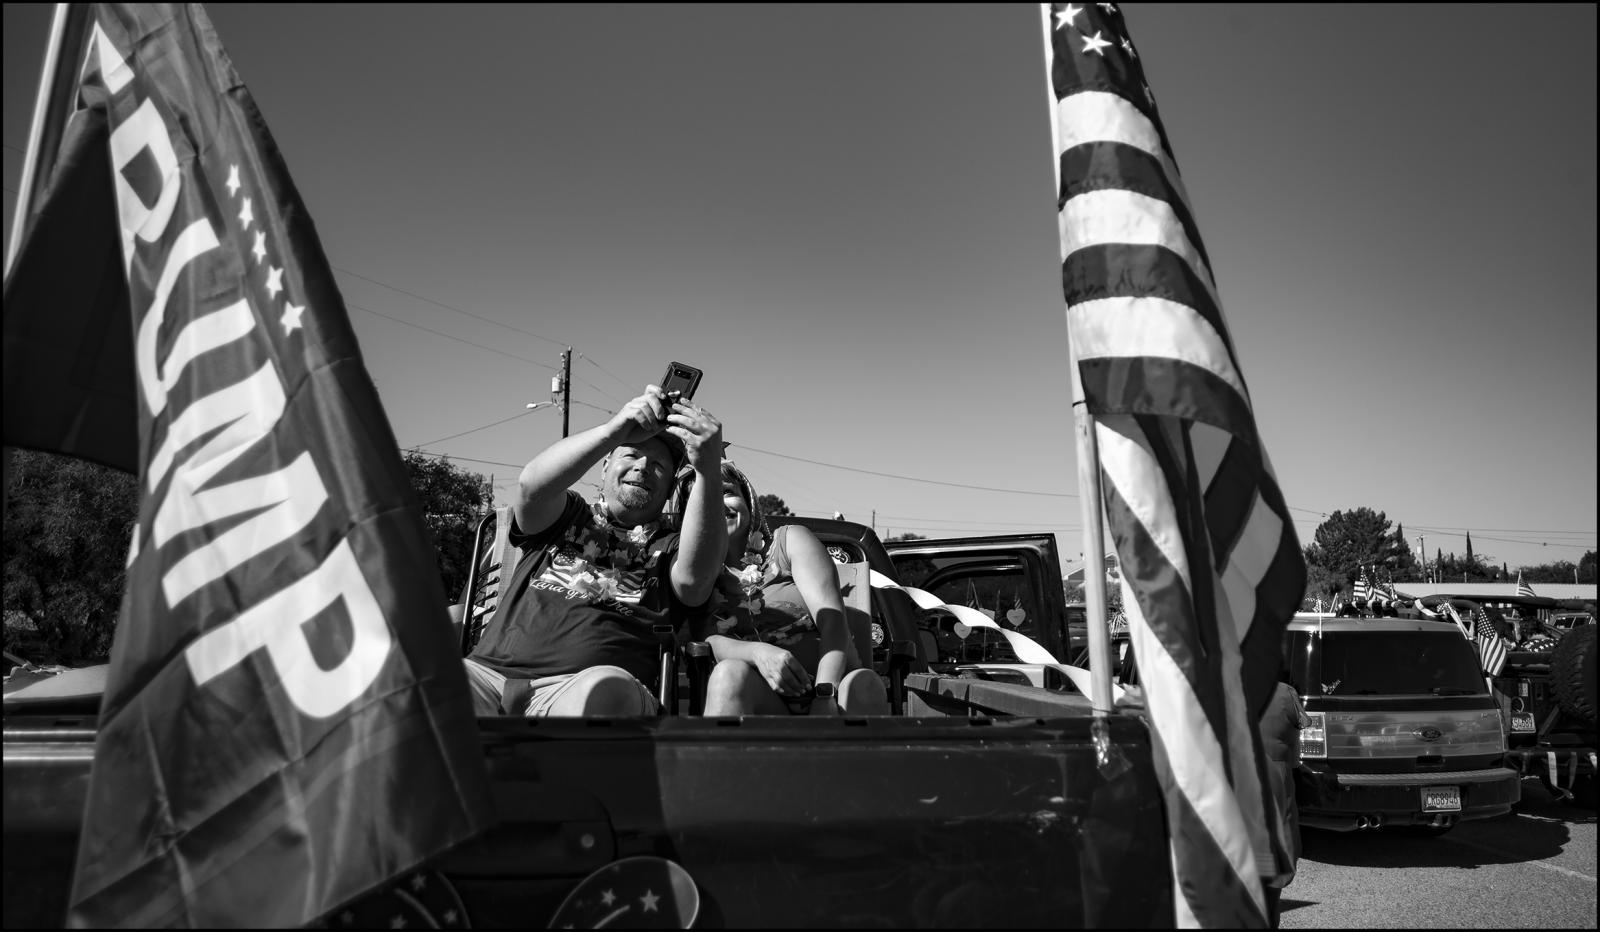 """Sitting in the bed of their pickup, a couple await the start of """"rougue"""" parade held in Benson, AZ. USA. Population 5000, 4th of July morning, 2020. A form of protest, this vehicular parade drew close to 500 people, not social distancing or using protective measures against COVID-19. Benson, Arizona. 07/04/2020."""